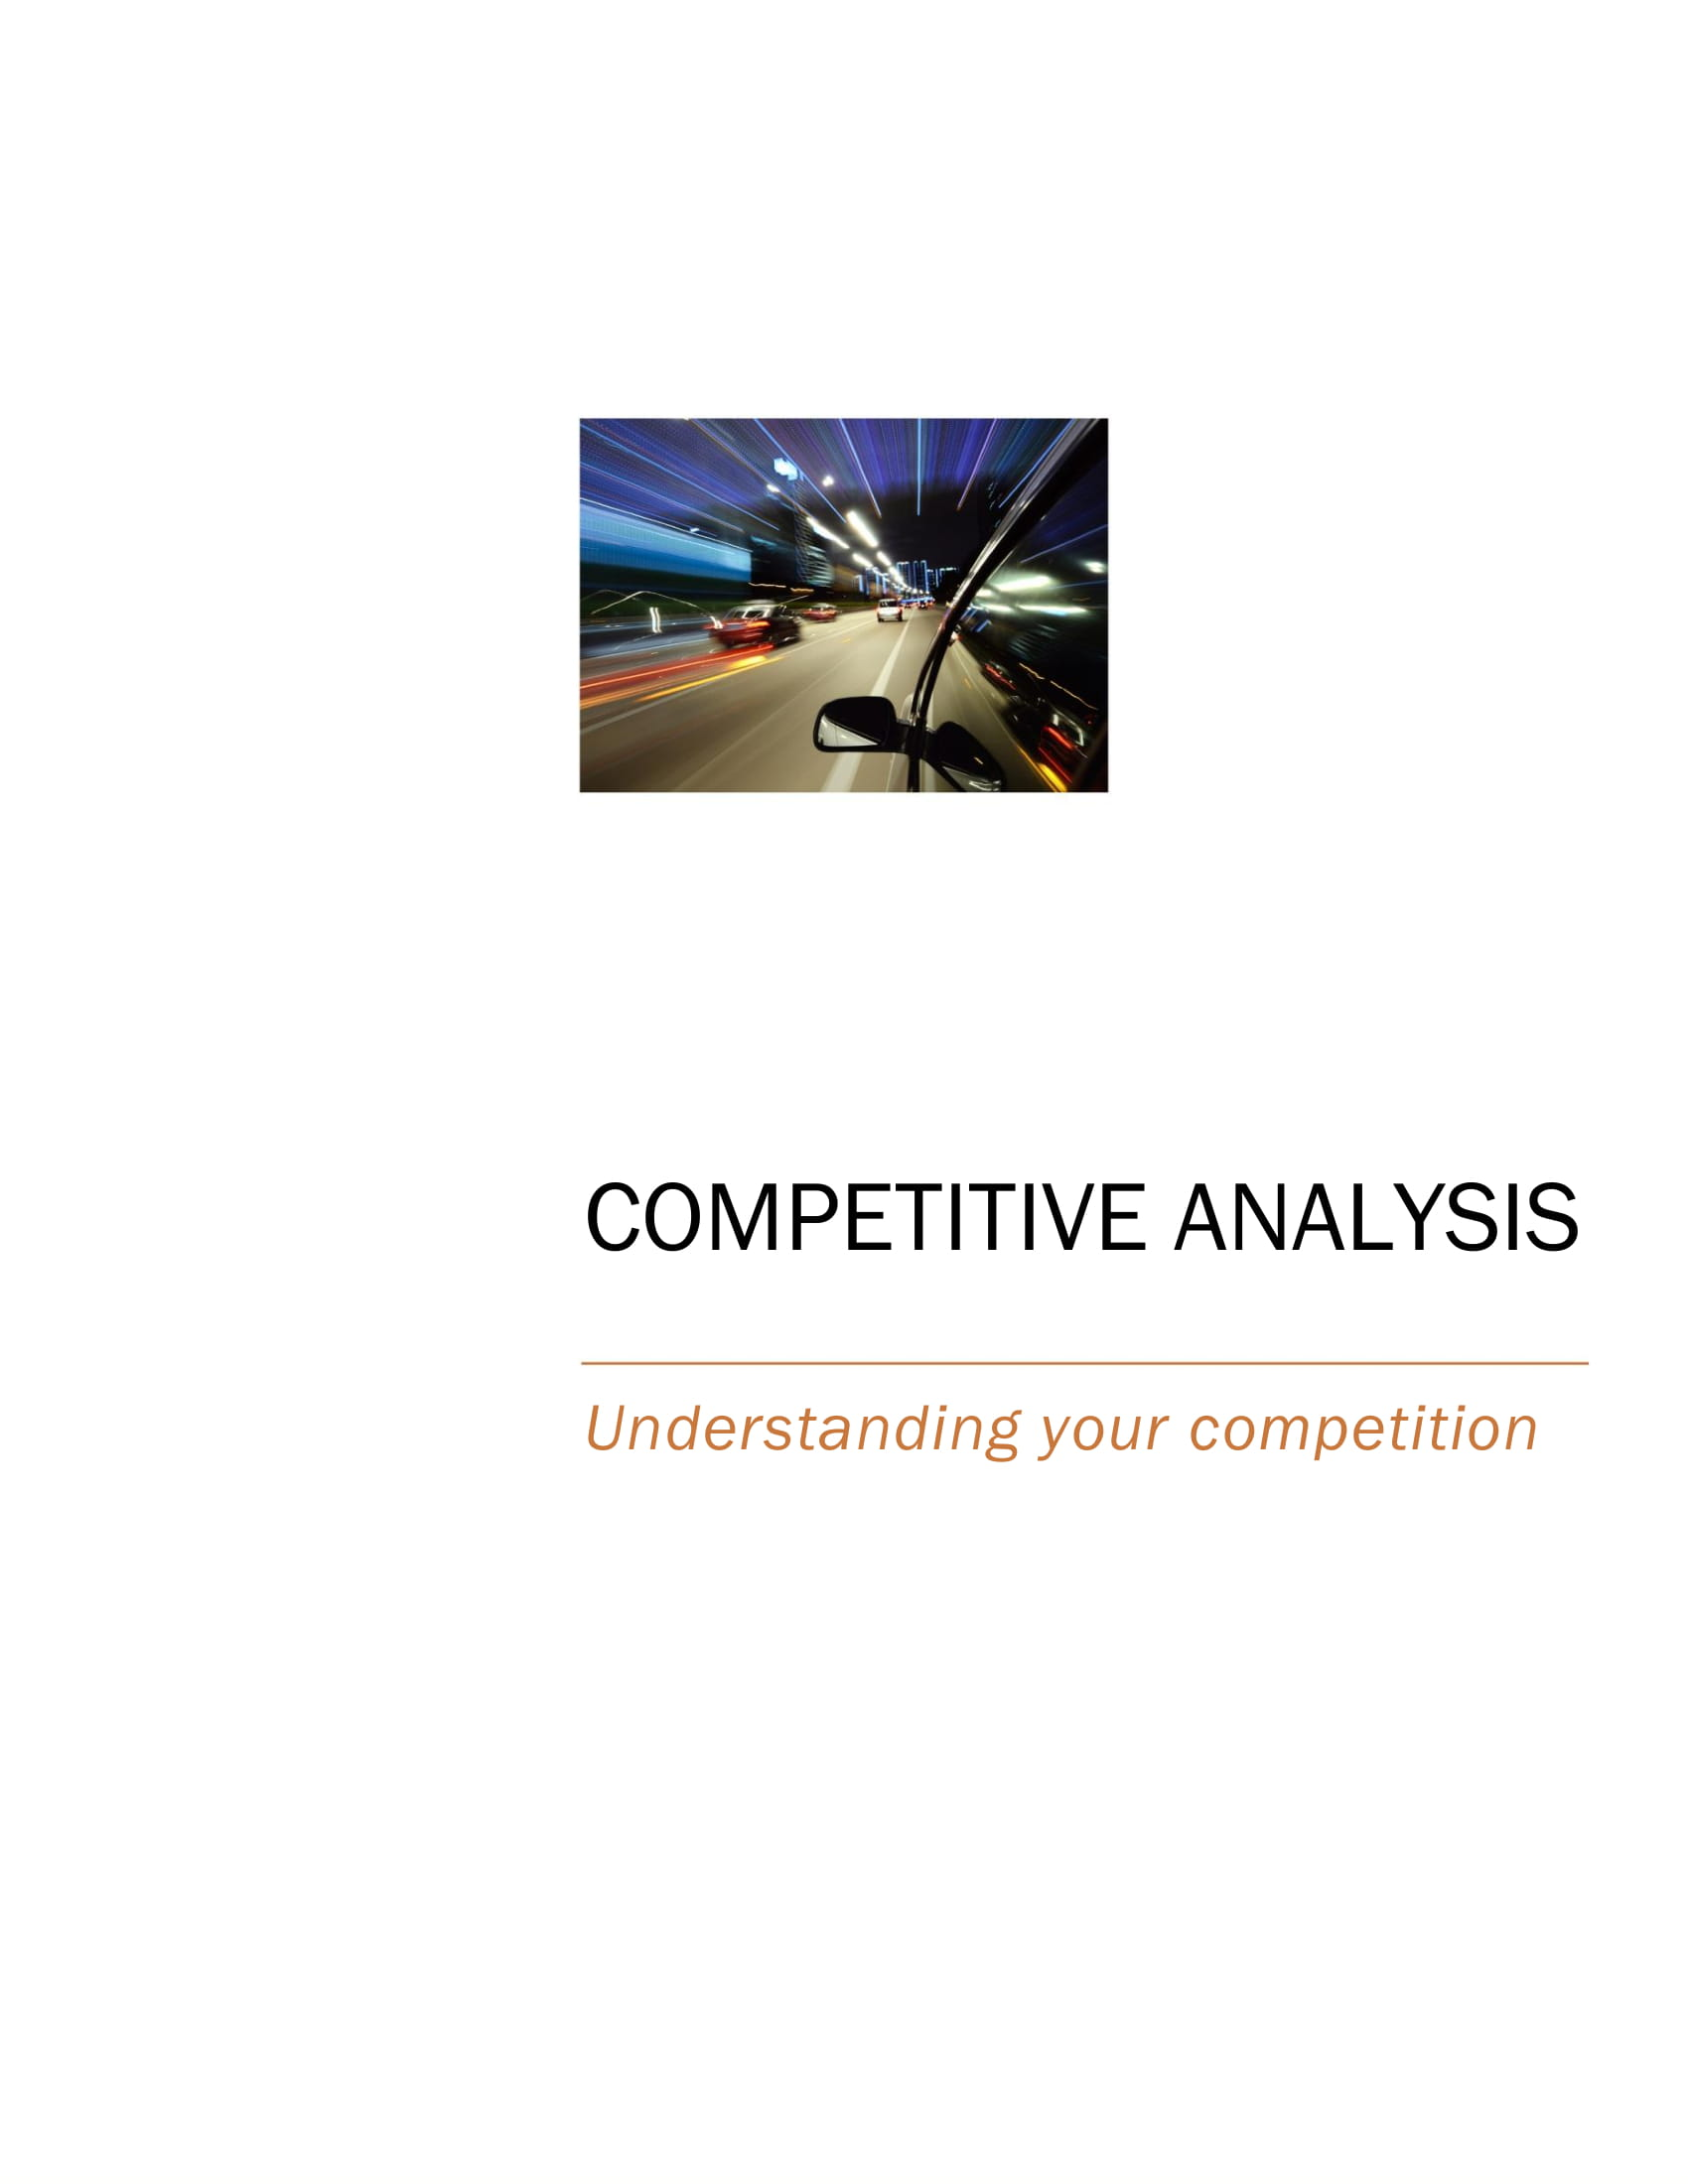 saasnet no year competitive analysis